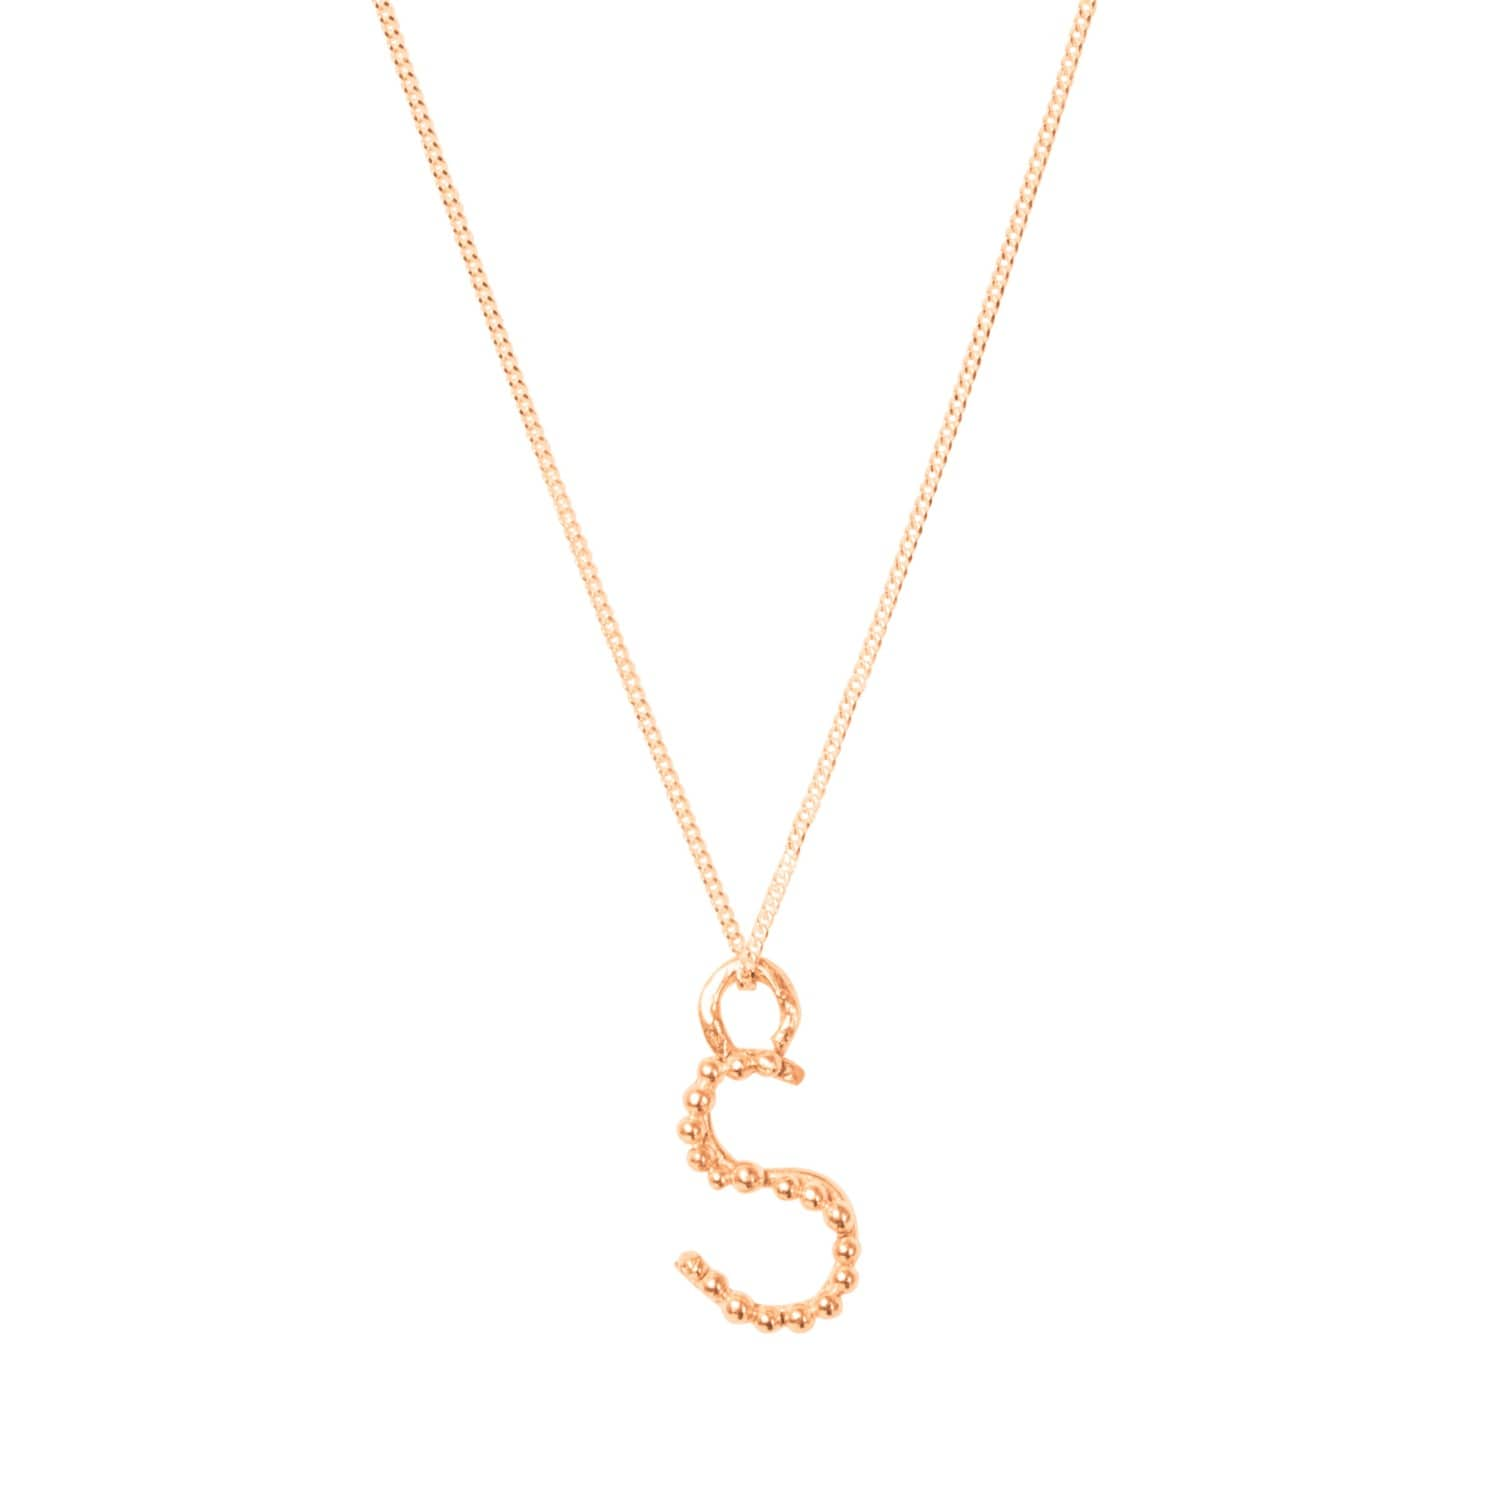 Solid rose gold s letter pendant necklace lily flo jewellery solid rose gold s letter pendant necklace image aloadofball Gallery